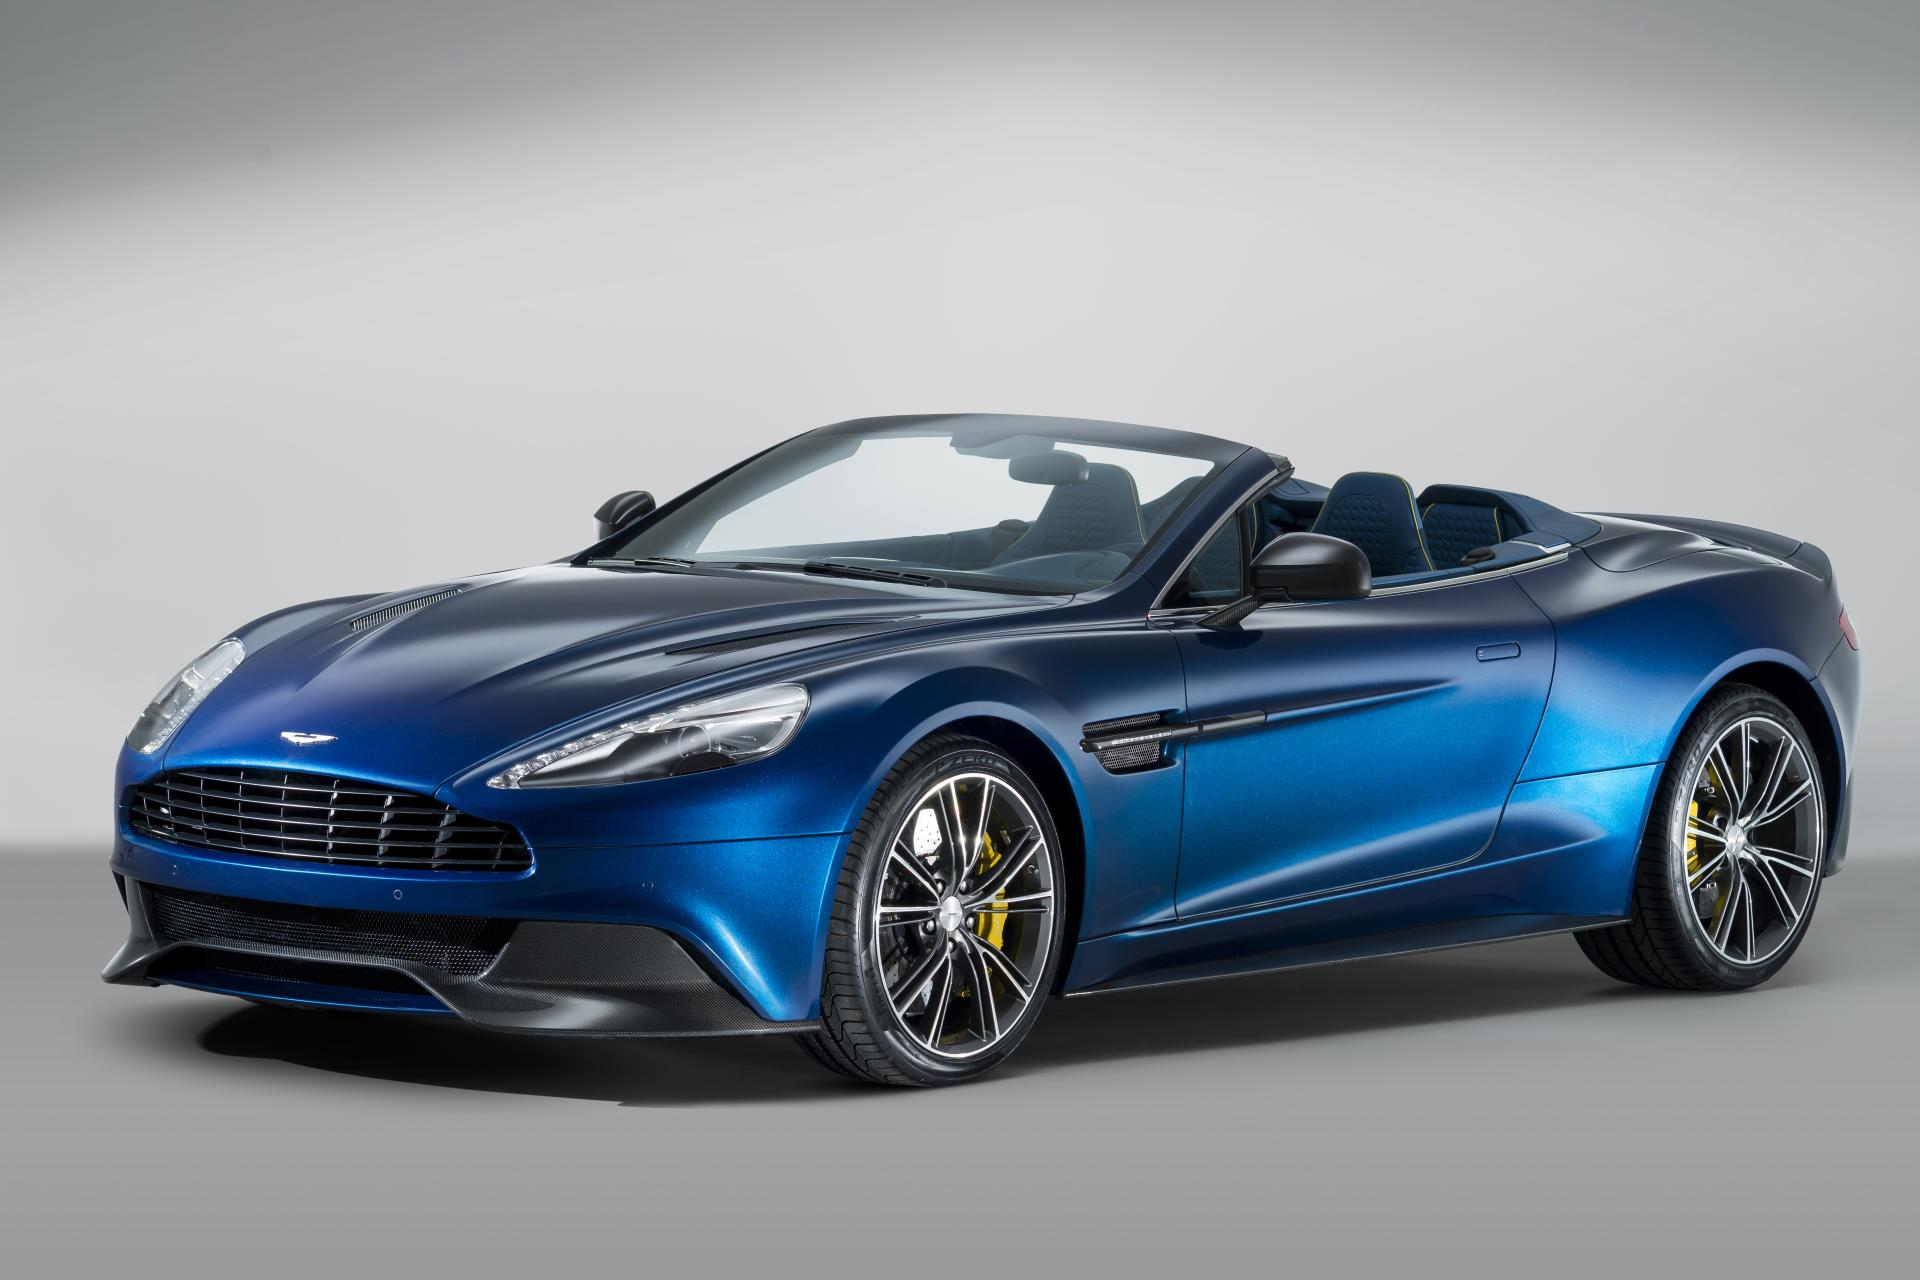 Aston Martin DB9 I Restyling 2 2012 - now Cabriolet #1